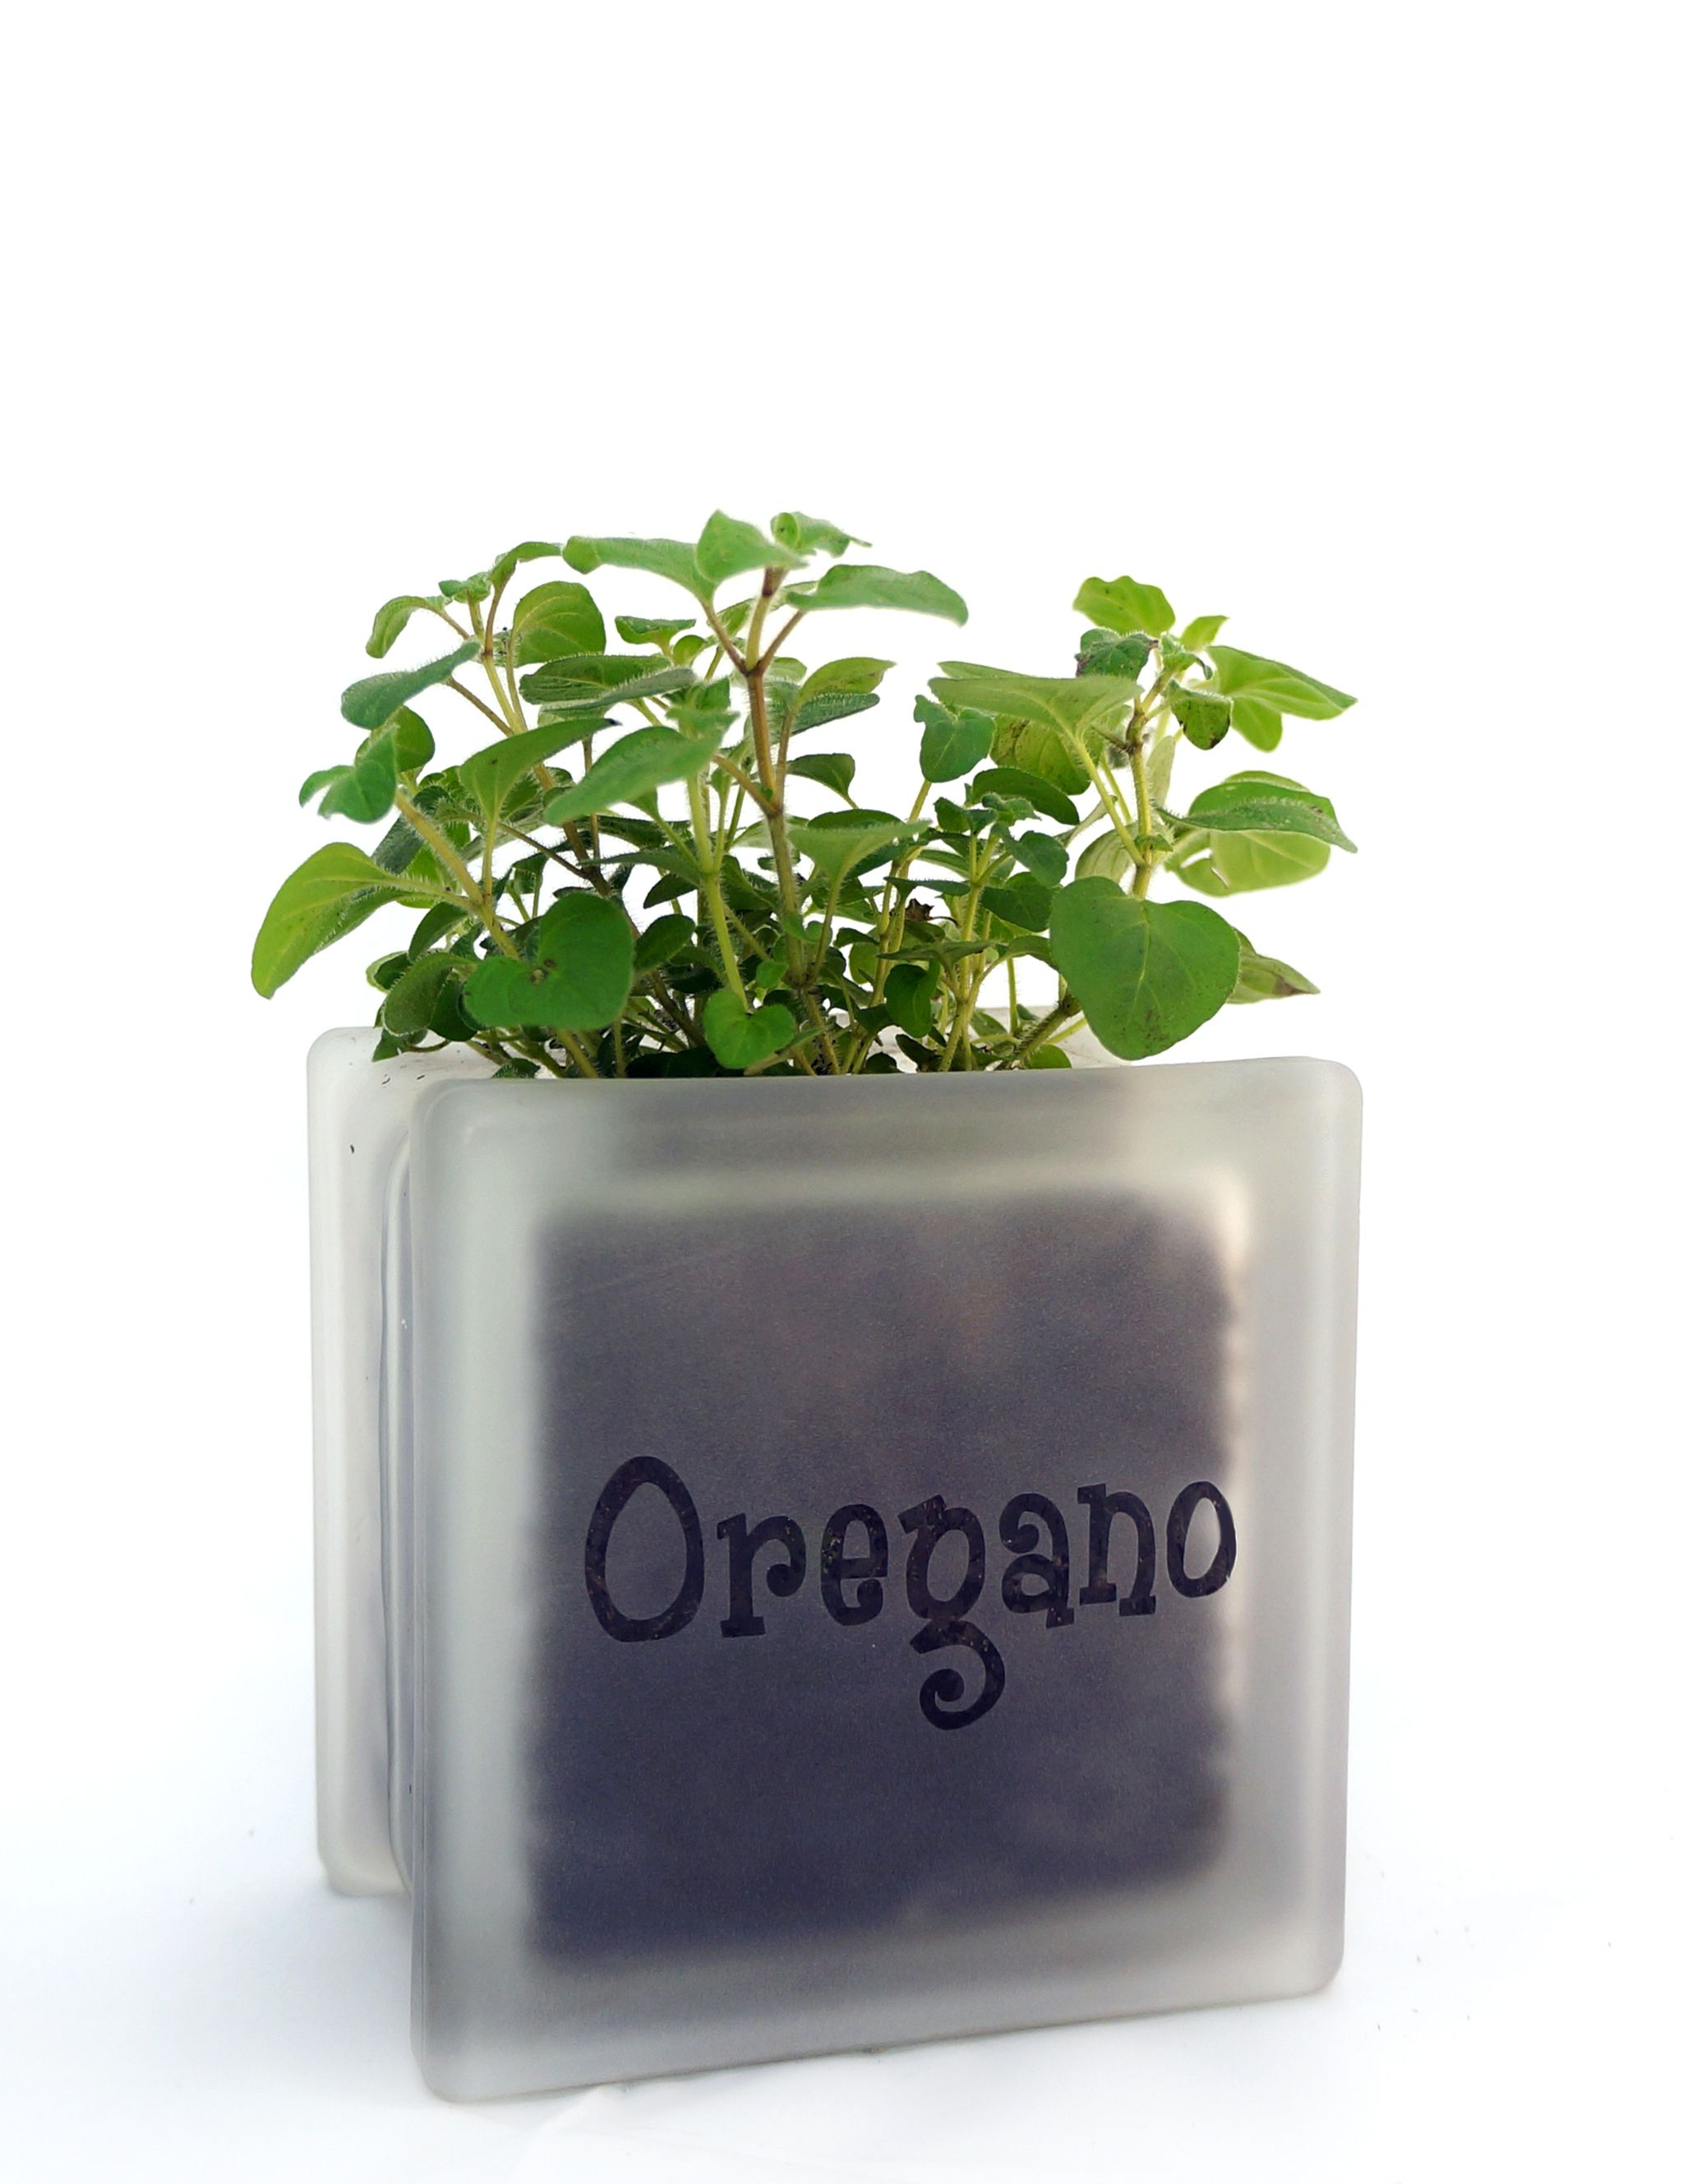 Indoor Gardening Gifts Gallery indoor gardening gardens and plants adorable mini glass block herb pot with oregano perfect for windowsills or as part of an indoor garden great gift for the green thumb person in your life workwithnaturefo